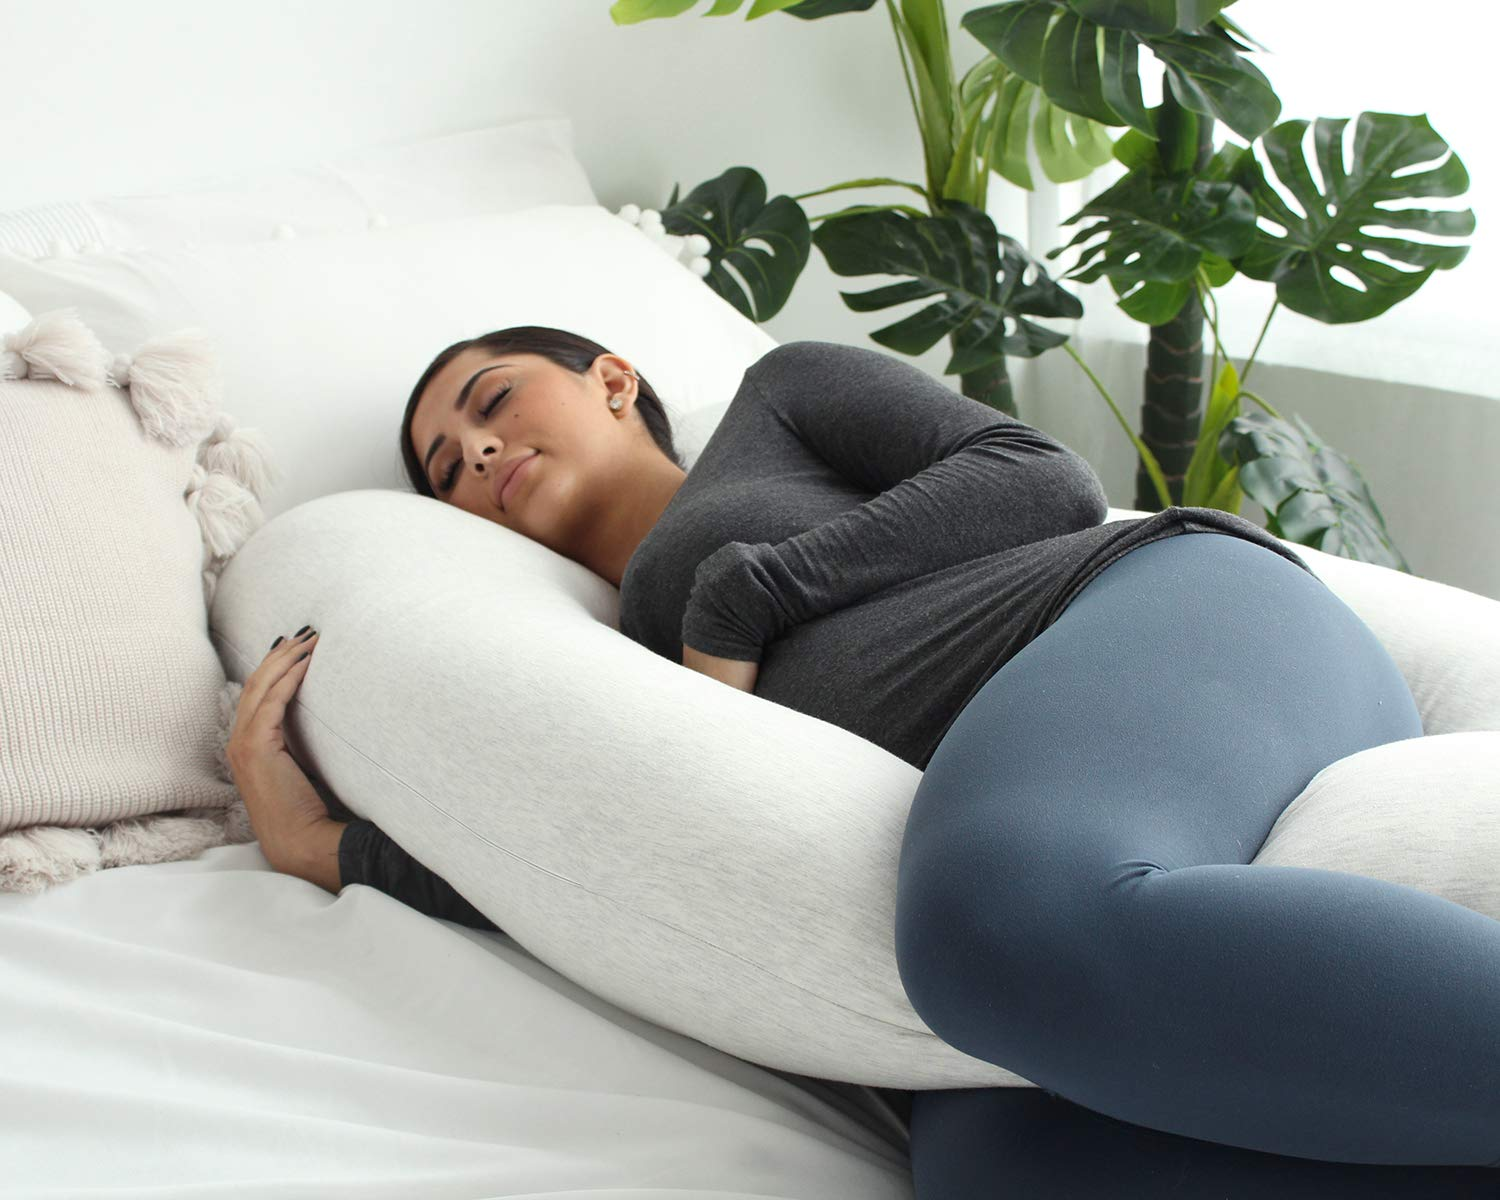 PharMeDoc Pregnancy Pillow, U-Shape Full Body Pillow and Maternity Support with Detachable Extension - Support for Back, Hips, Legs, Belly for Pregnant Women by PharMeDoc (Image #3)